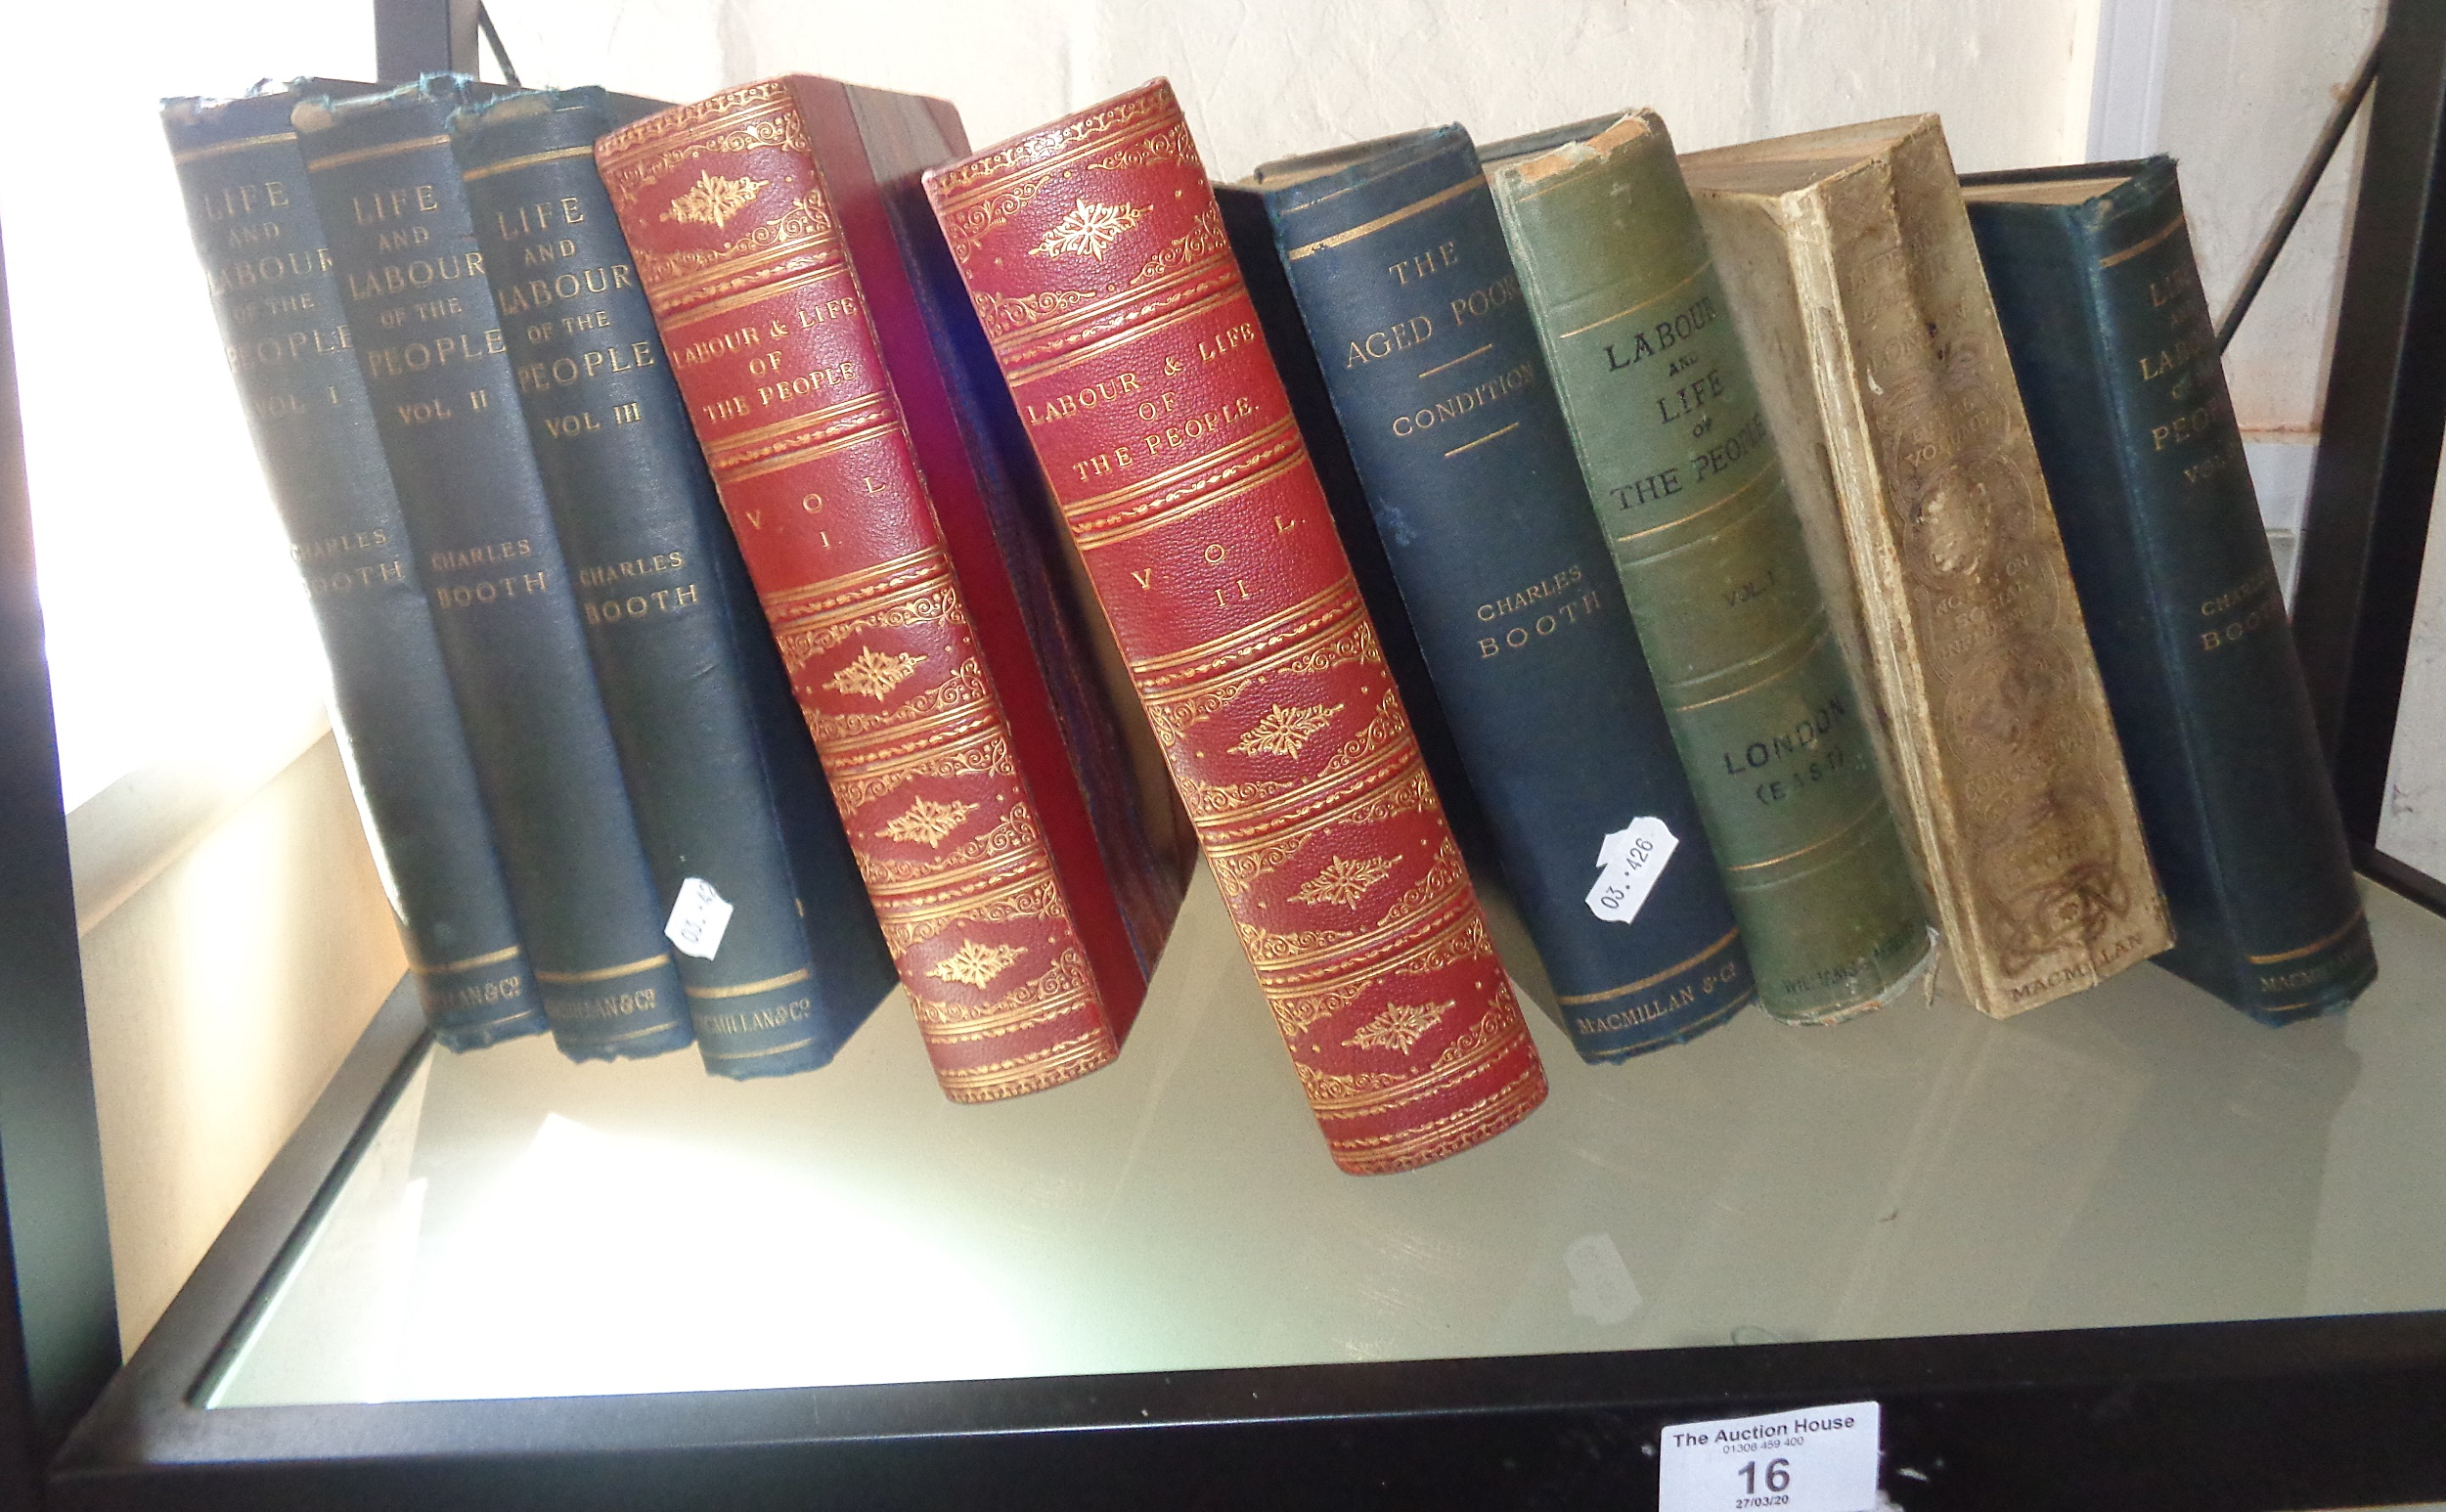 """Lot 16 - Nine books by Charles Booth, inc. 1891 """"Labour & Life of the People"""", 2 vols, half leather"""